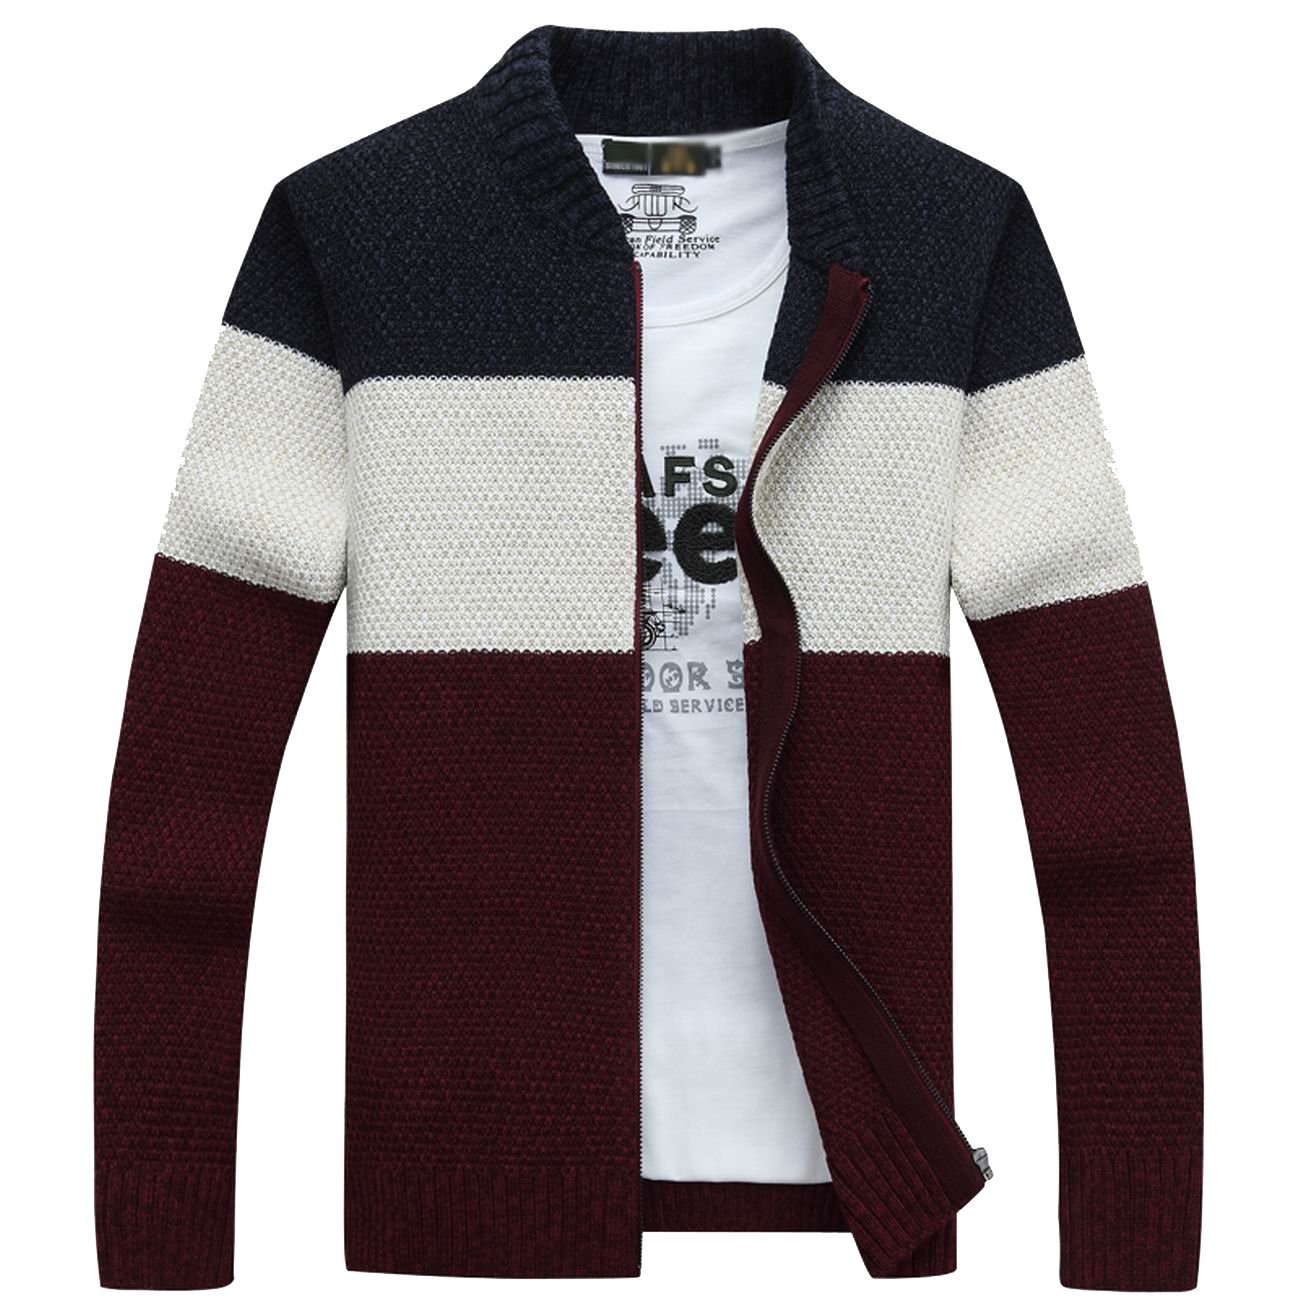 fanhang Men's Slim Fit Knitted Zip Down Cardigan Sweater with Stripe